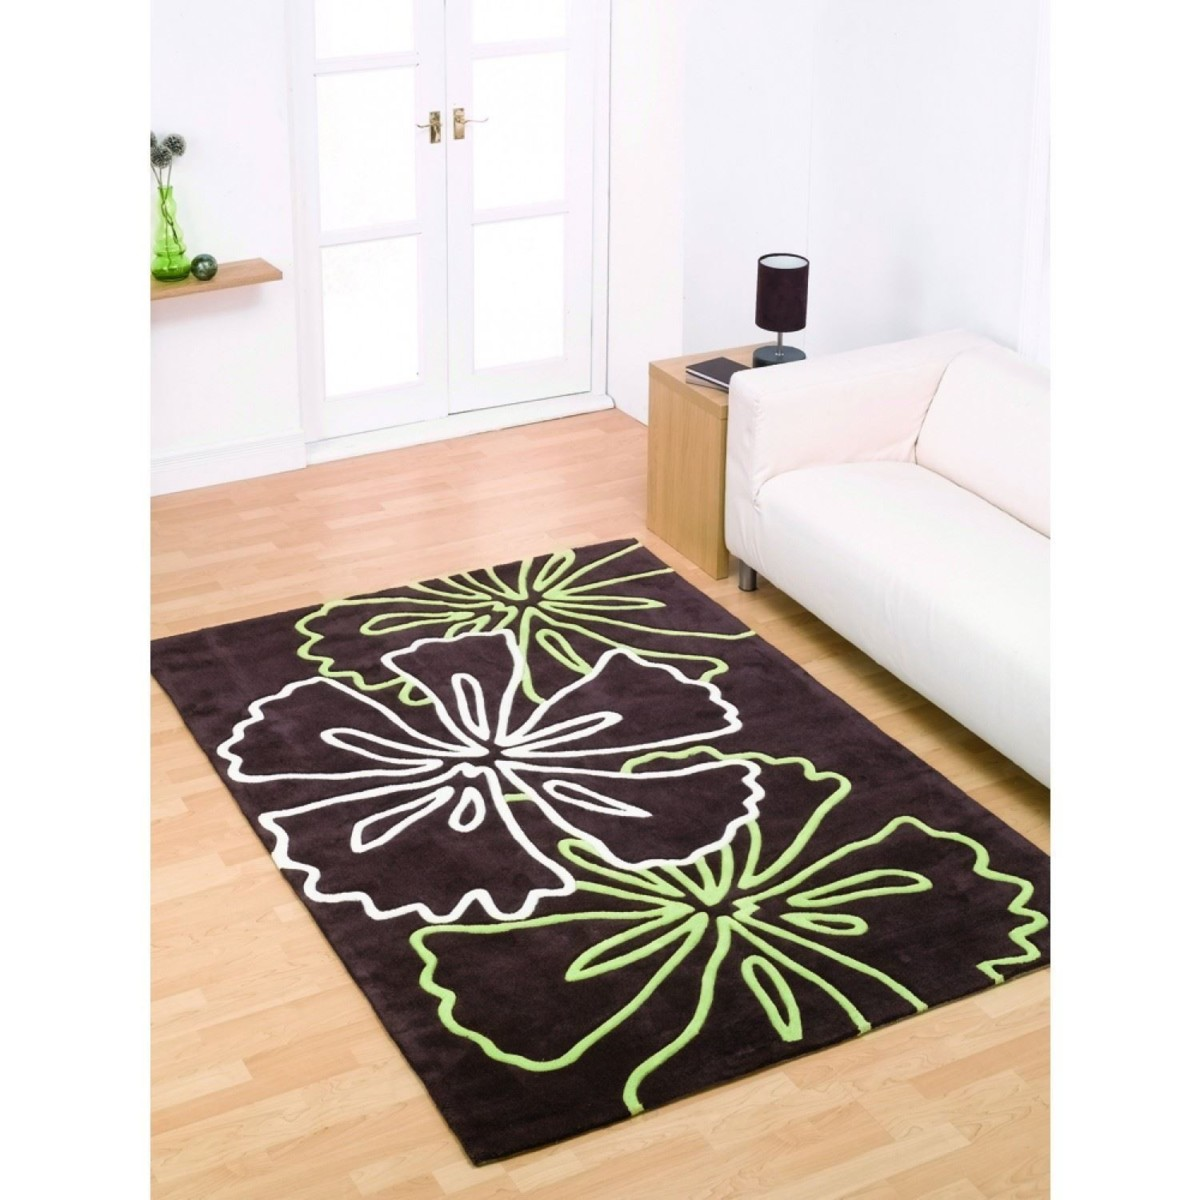 awesome maison ue monde de luenfant ue tapis moquettes enfants ue tapis with tapis rond maison. Black Bedroom Furniture Sets. Home Design Ideas